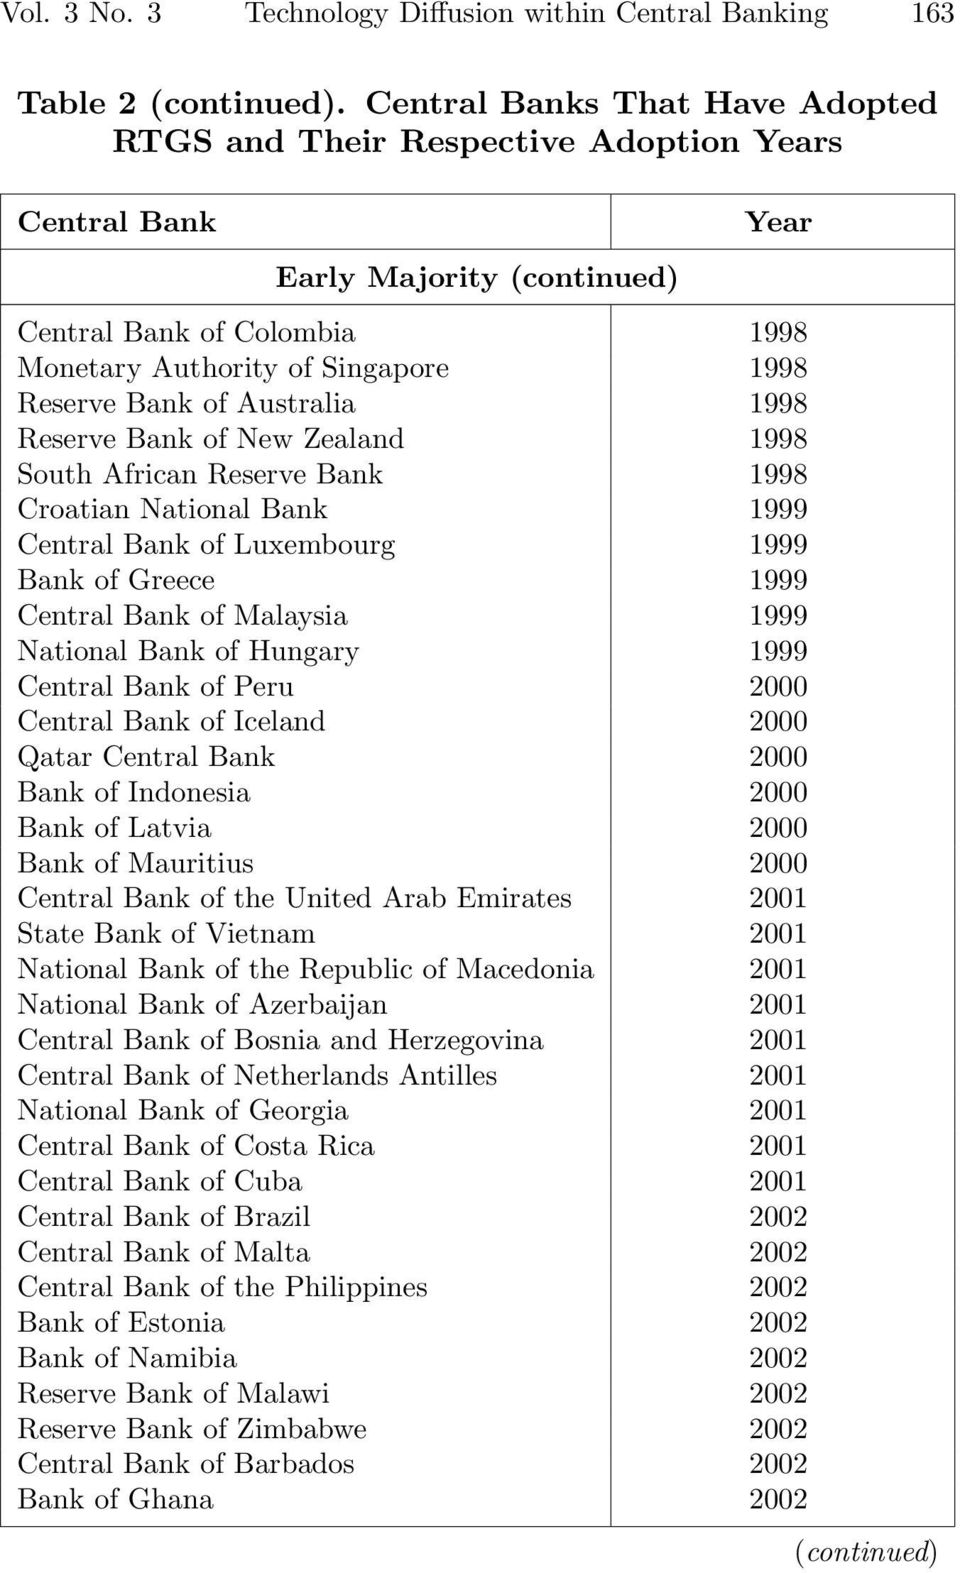 of Australia 1998 Reserve Bank of New Zealand 1998 South African Reserve Bank 1998 Croatian National Bank 1999 Central Bank of Luxembourg 1999 Bank of Greece 1999 Central Bank of Malaysia 1999